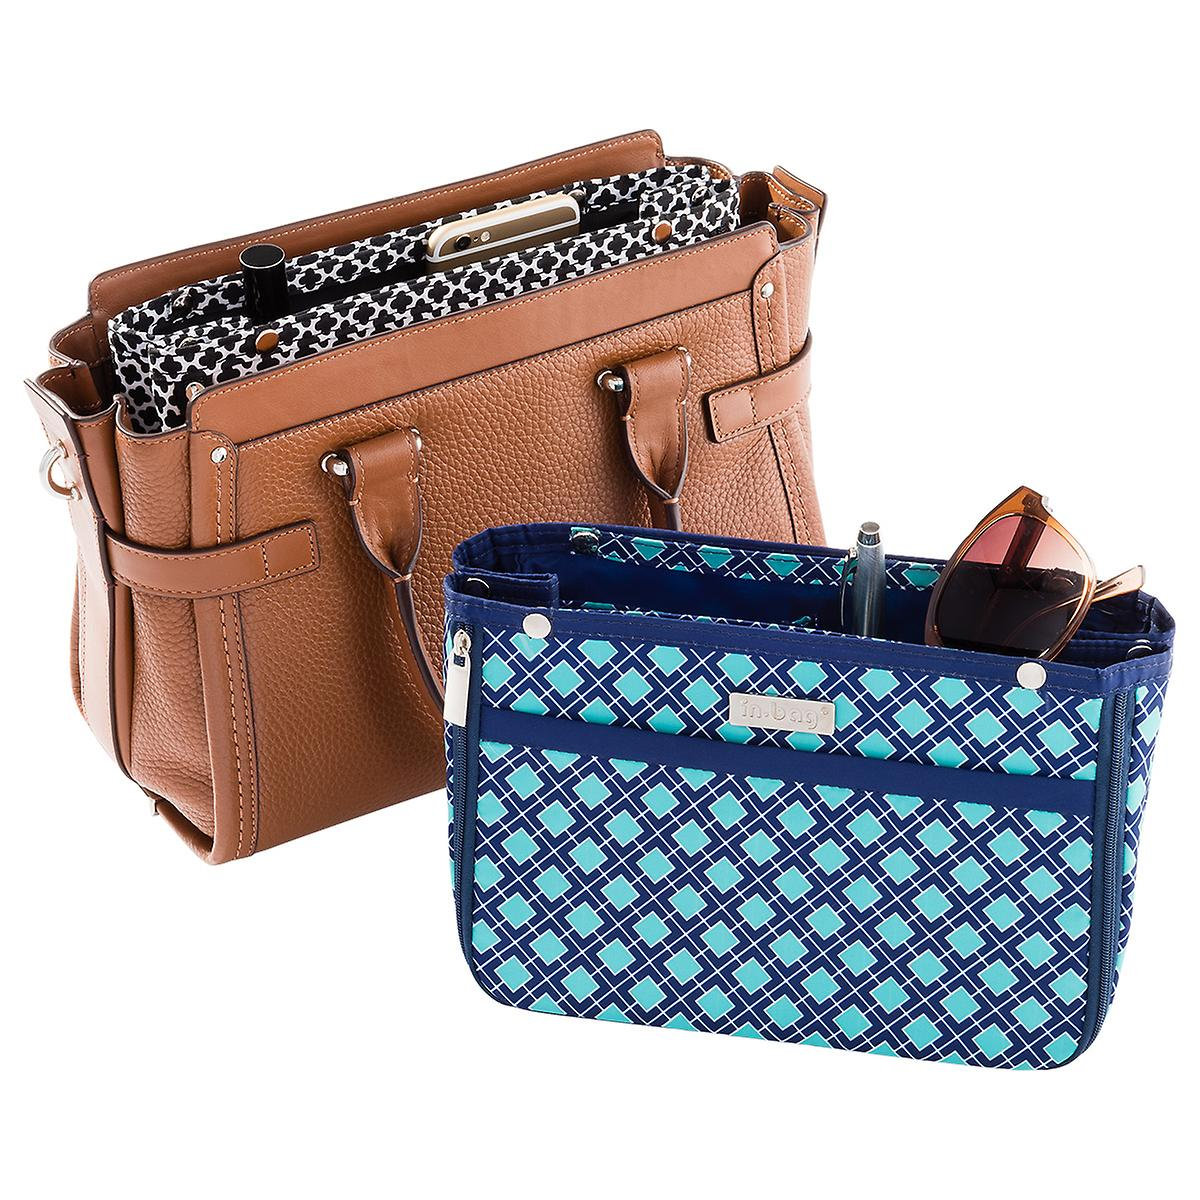 In Bag Navy Amp Aqua Tile Purse Organizer The Container Store